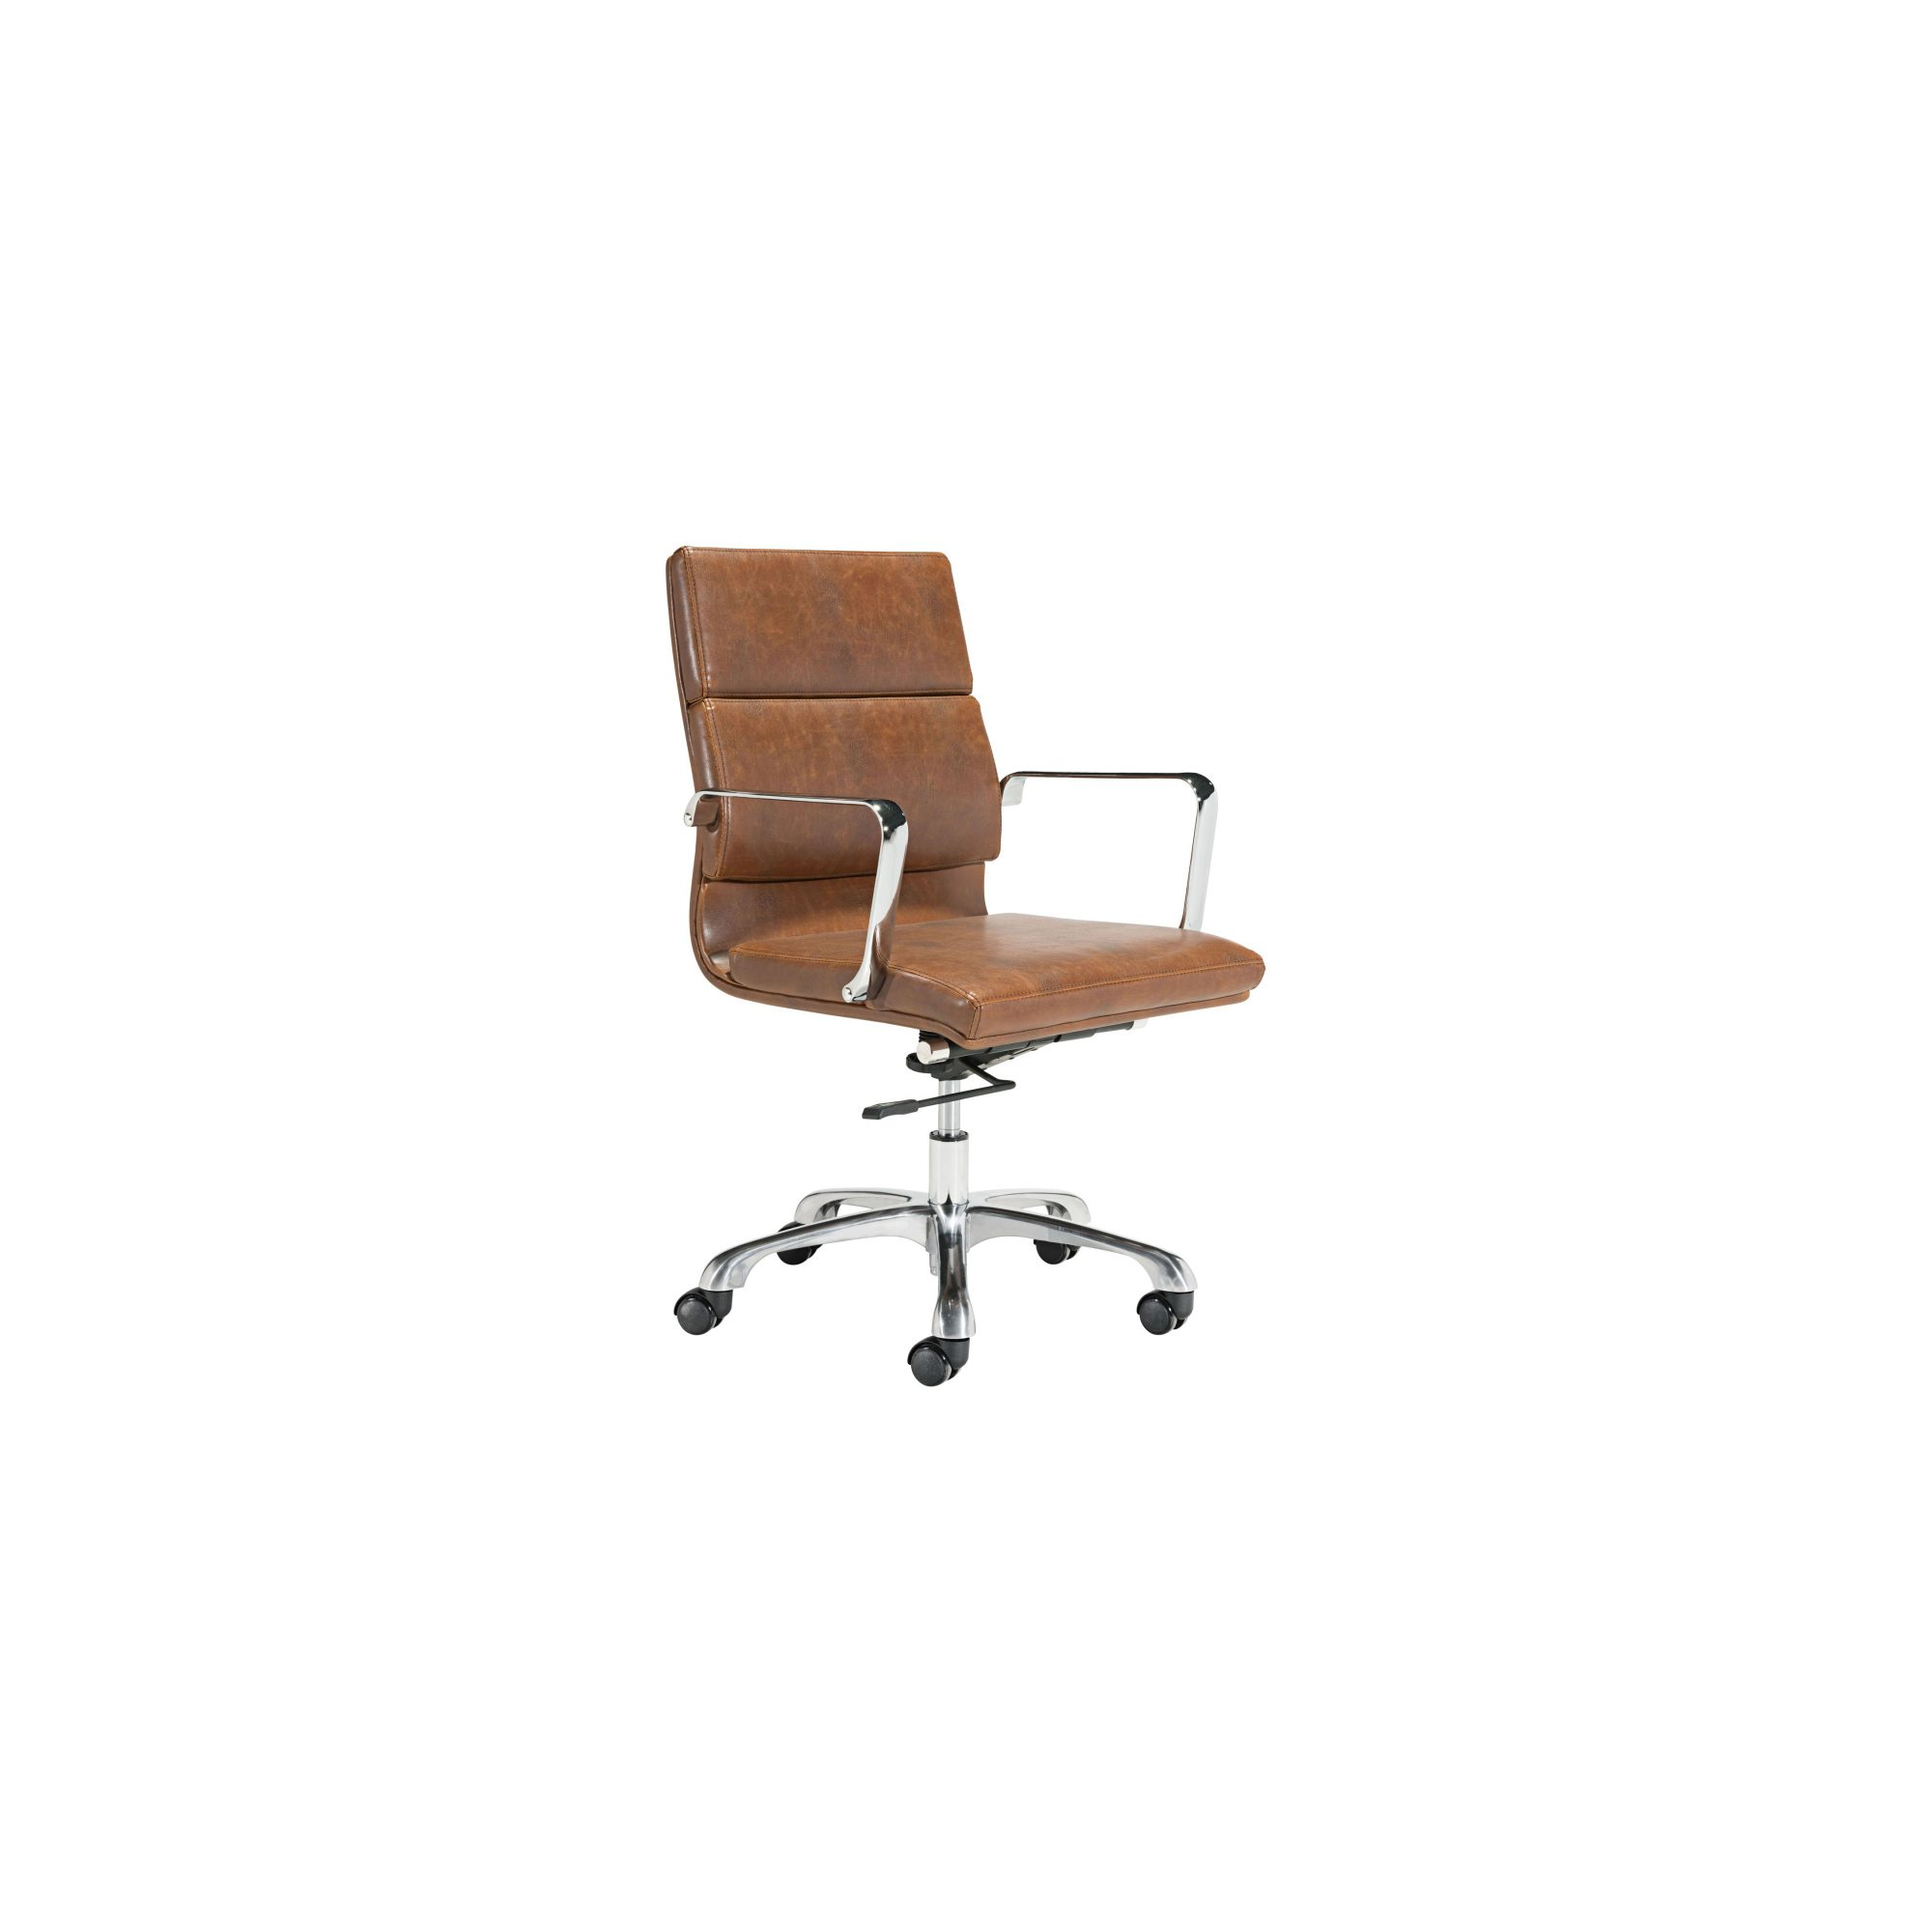 Ithaca Vintage Brown Faux Leather Adjustable Office Chair